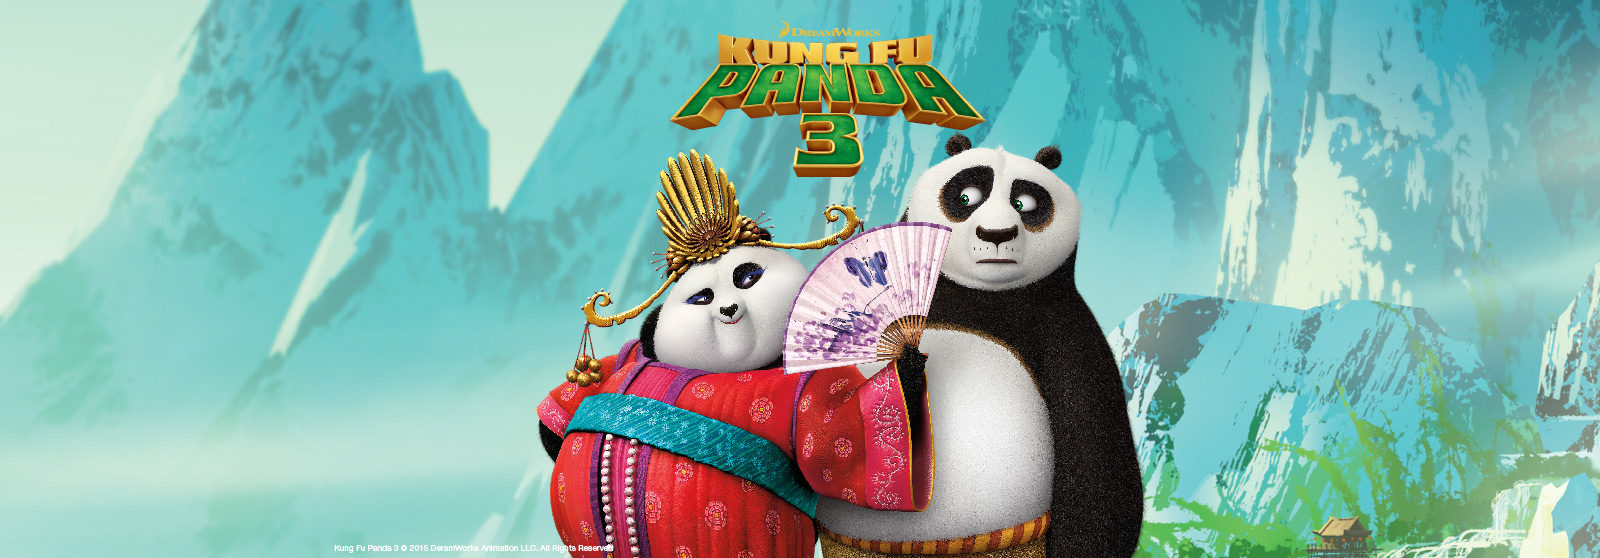 Kung-Fu Panda Collection